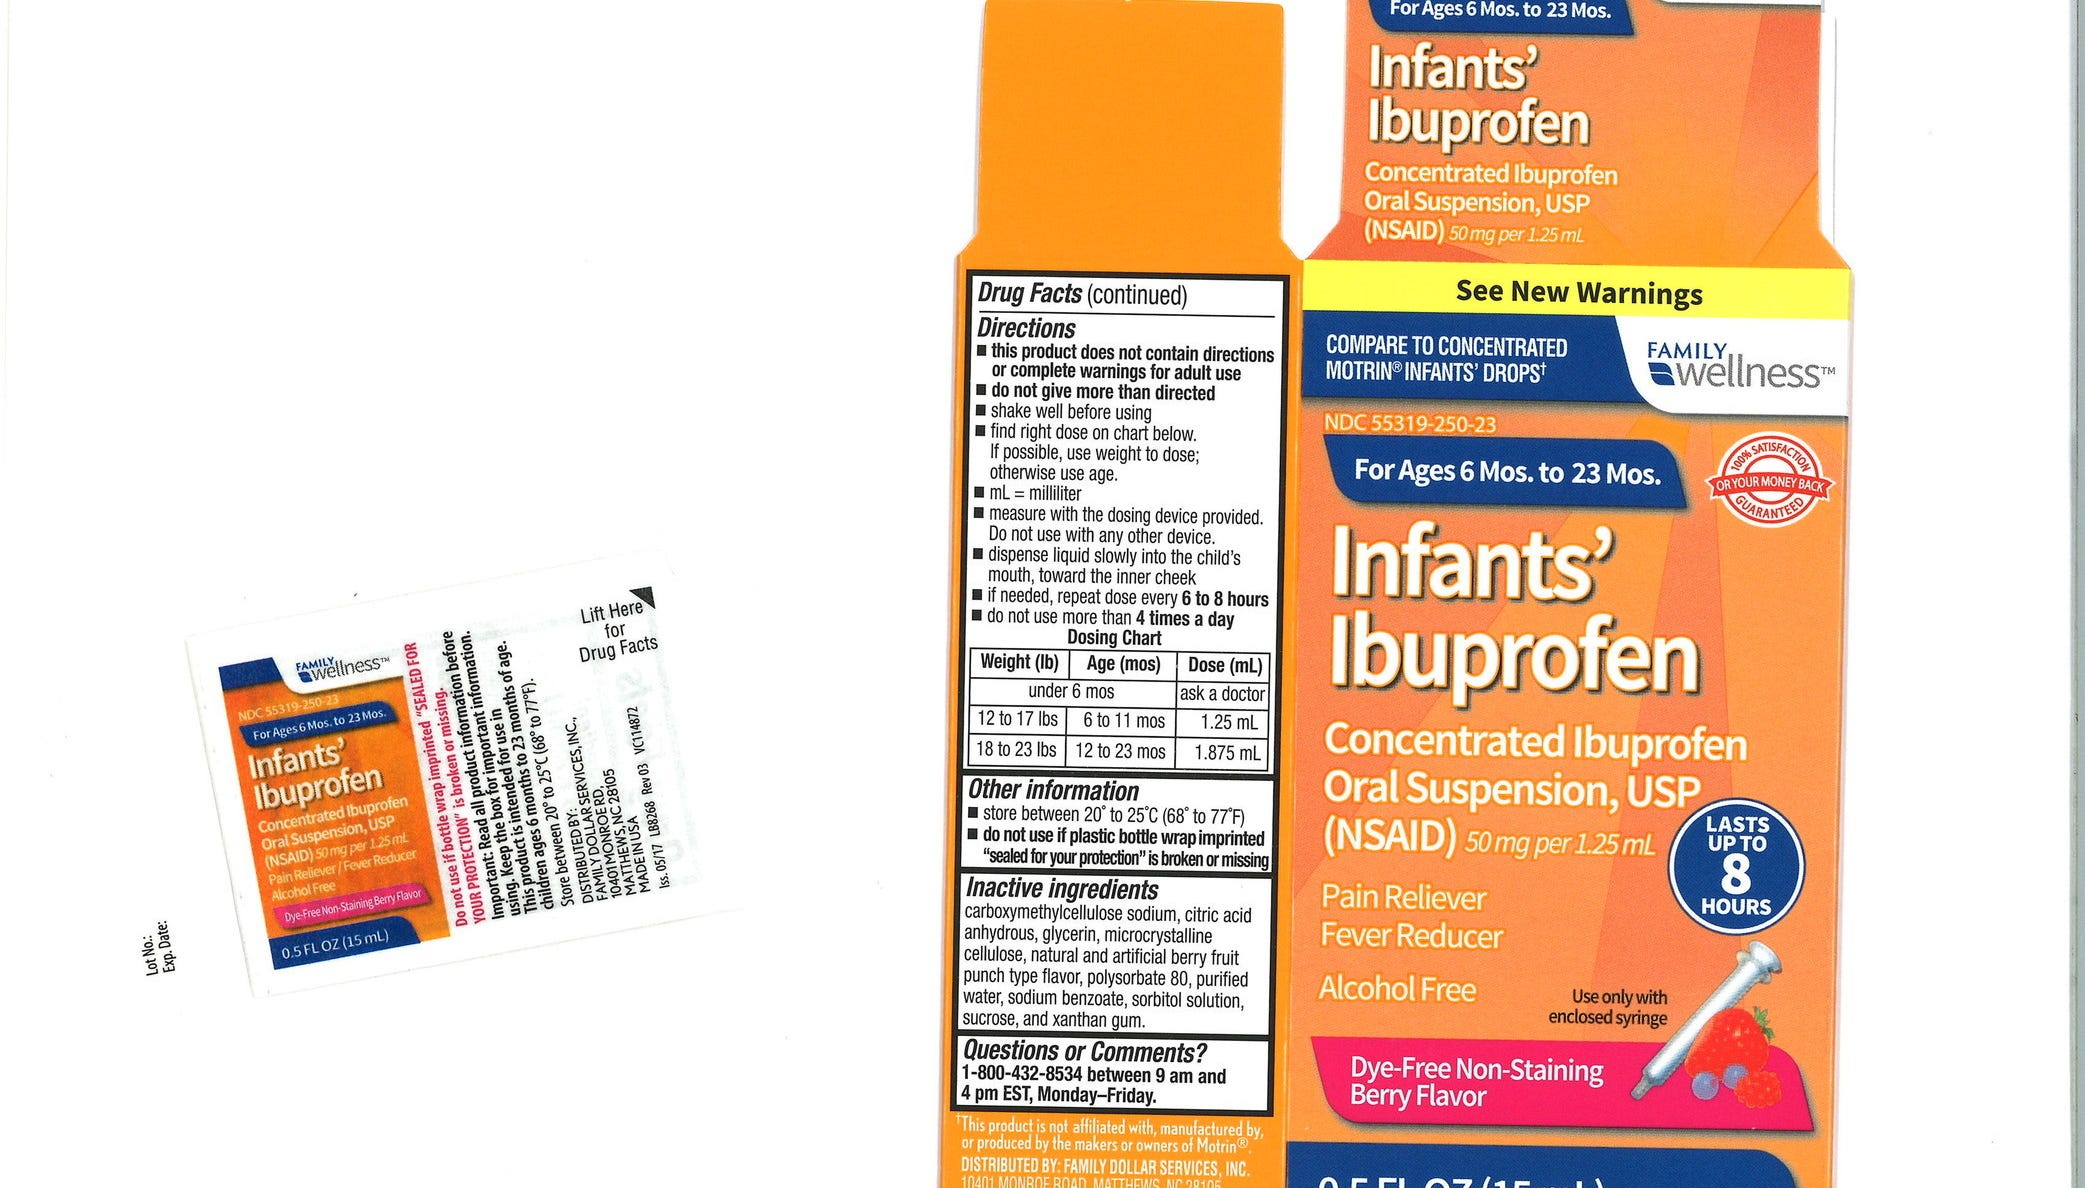 Tris Pharma, Inc. has voluntarily recalled three lots of Infants' Ibuprofen due to potentially higher concentrations of ibuprofen. (PRNewsfoto/Tris Pharma, Inc.)